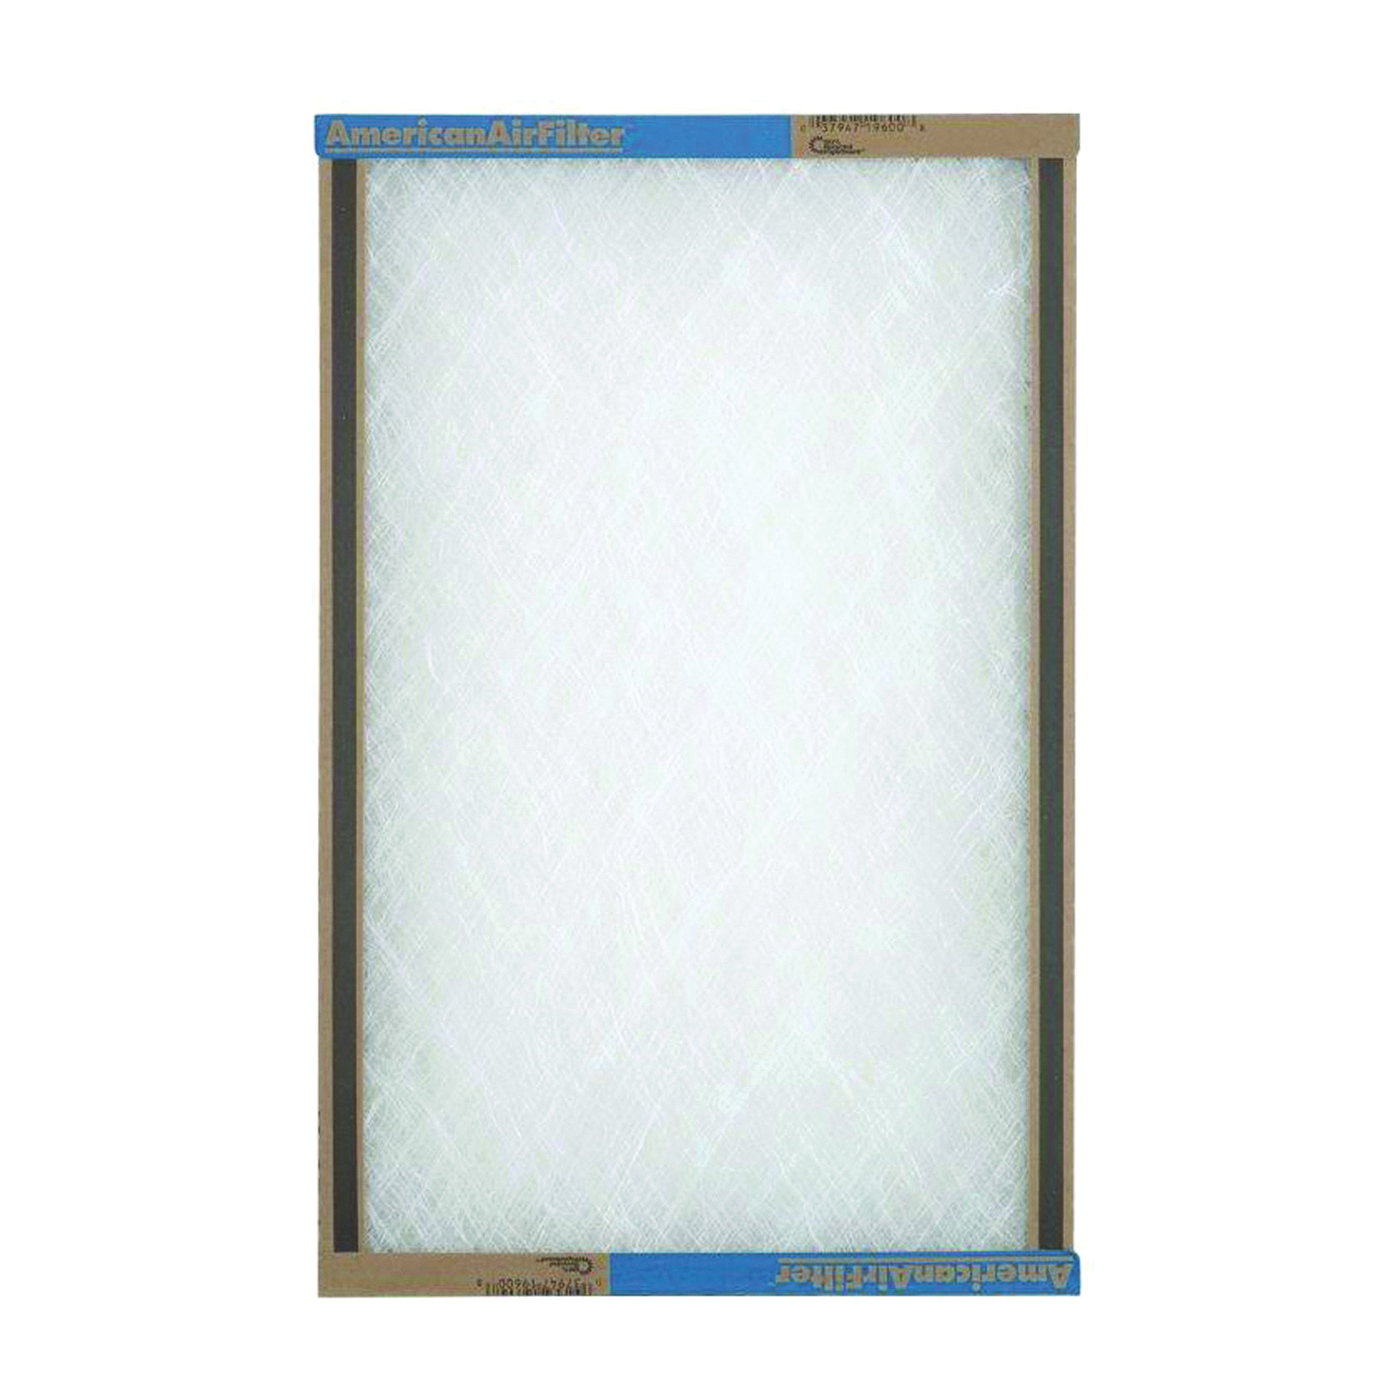 Picture of AAF 125301 Air Filter, 30 in L, 25 in W